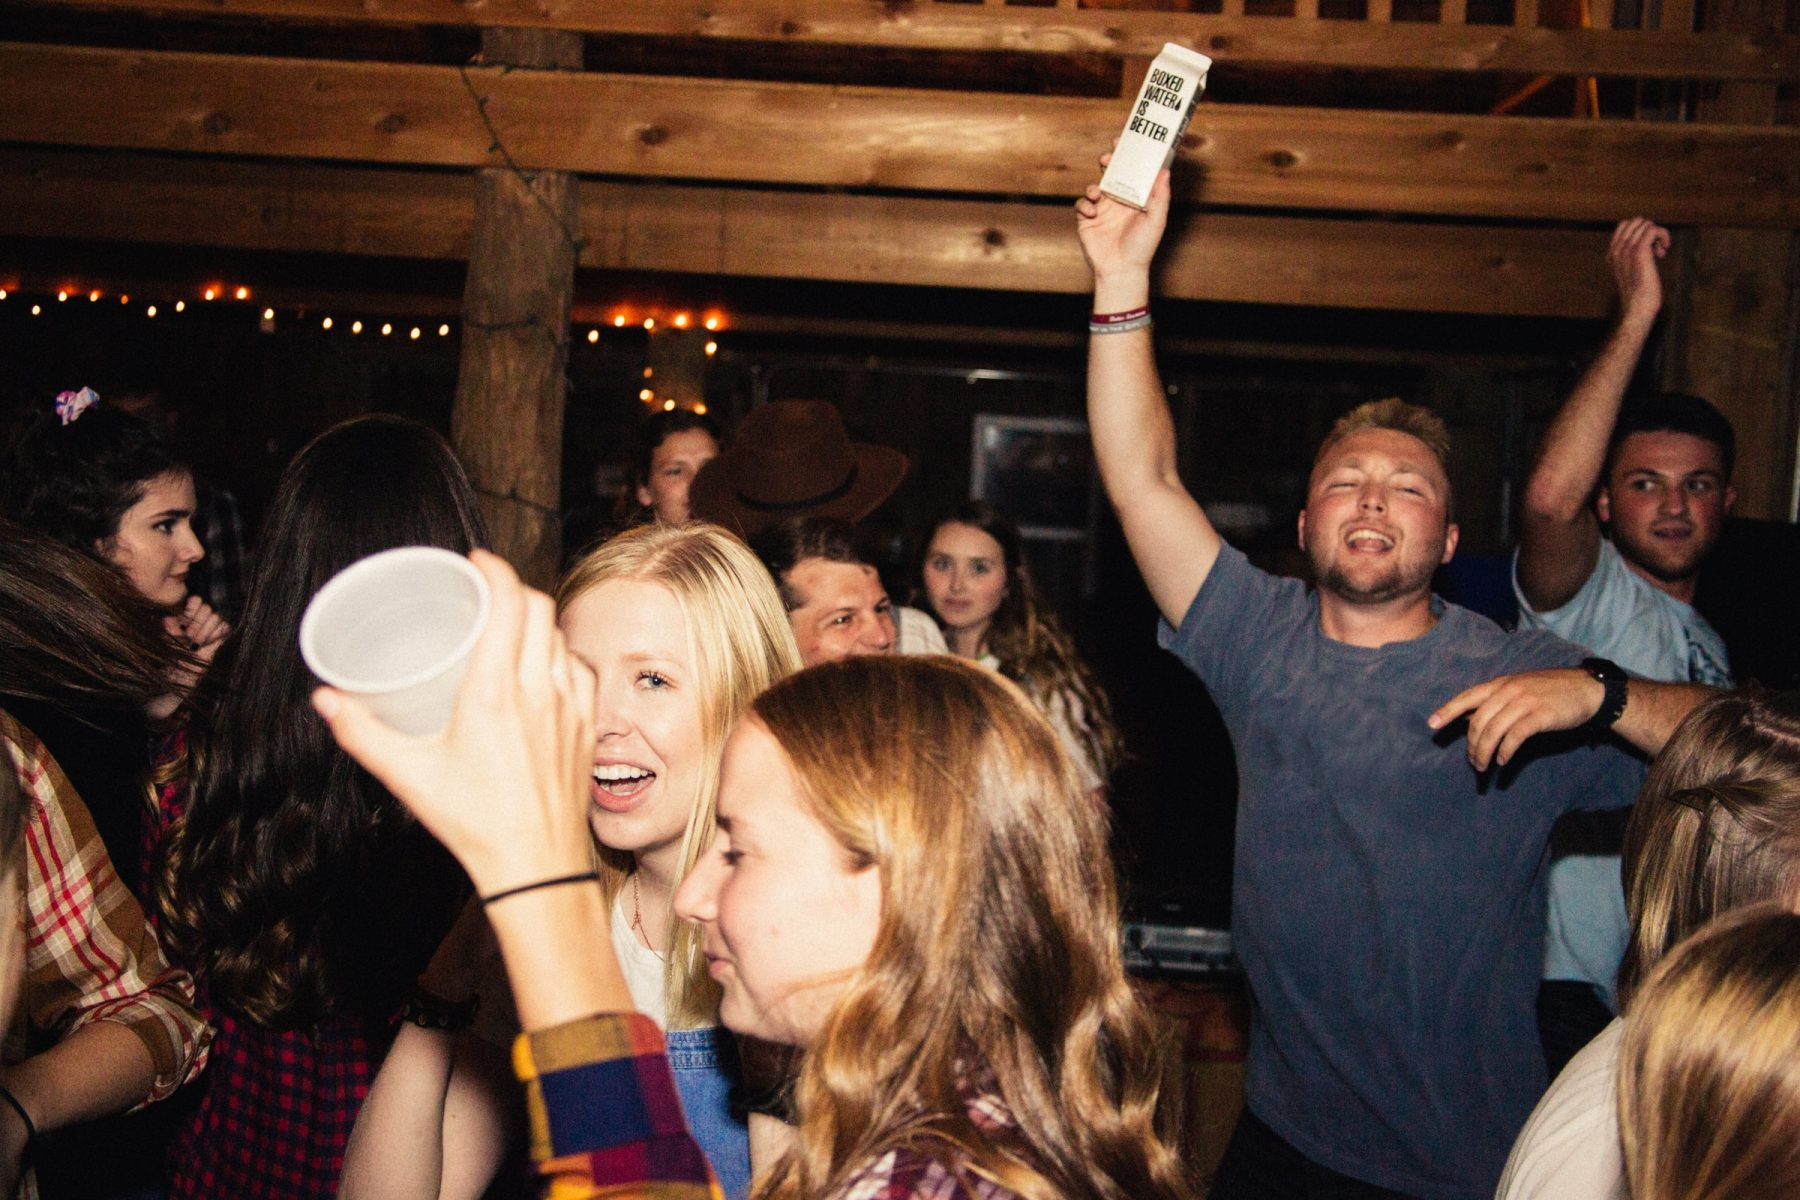 In an article about TikTok influencers, a photo of people at a house party